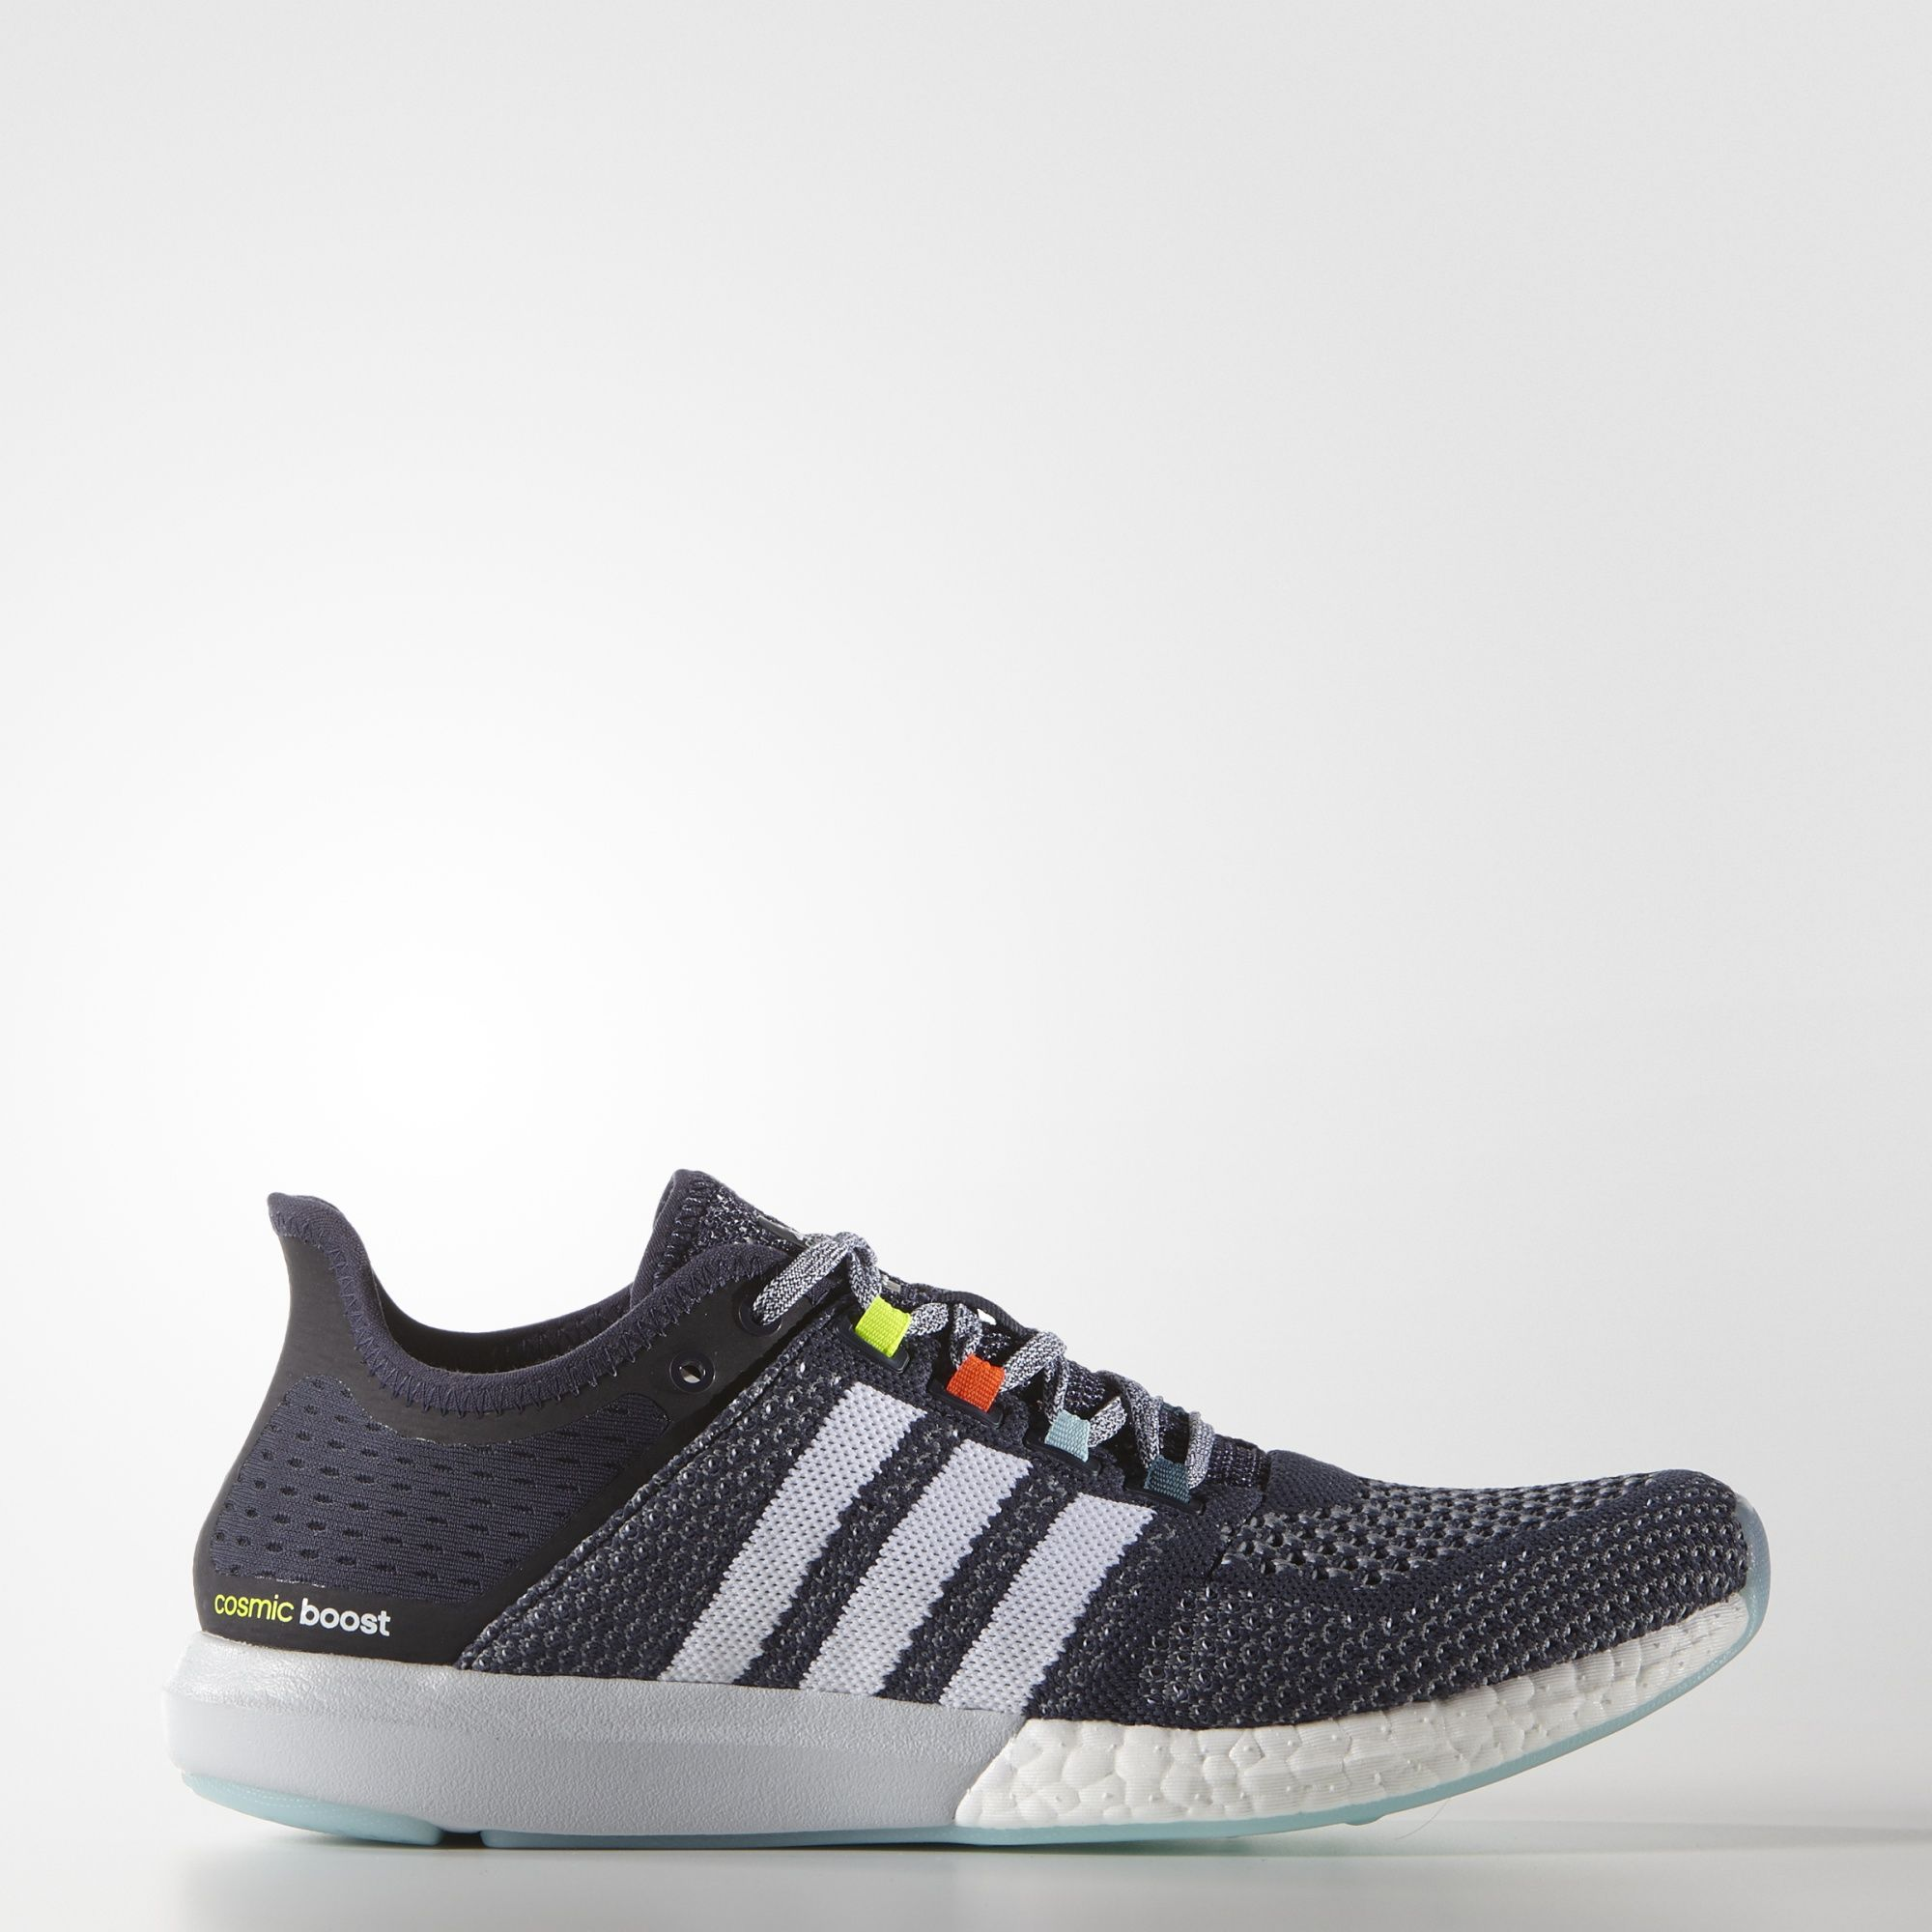 4f1b782f4ee3 Adidas Men s Climachill Cosmic Boost Running Shoes